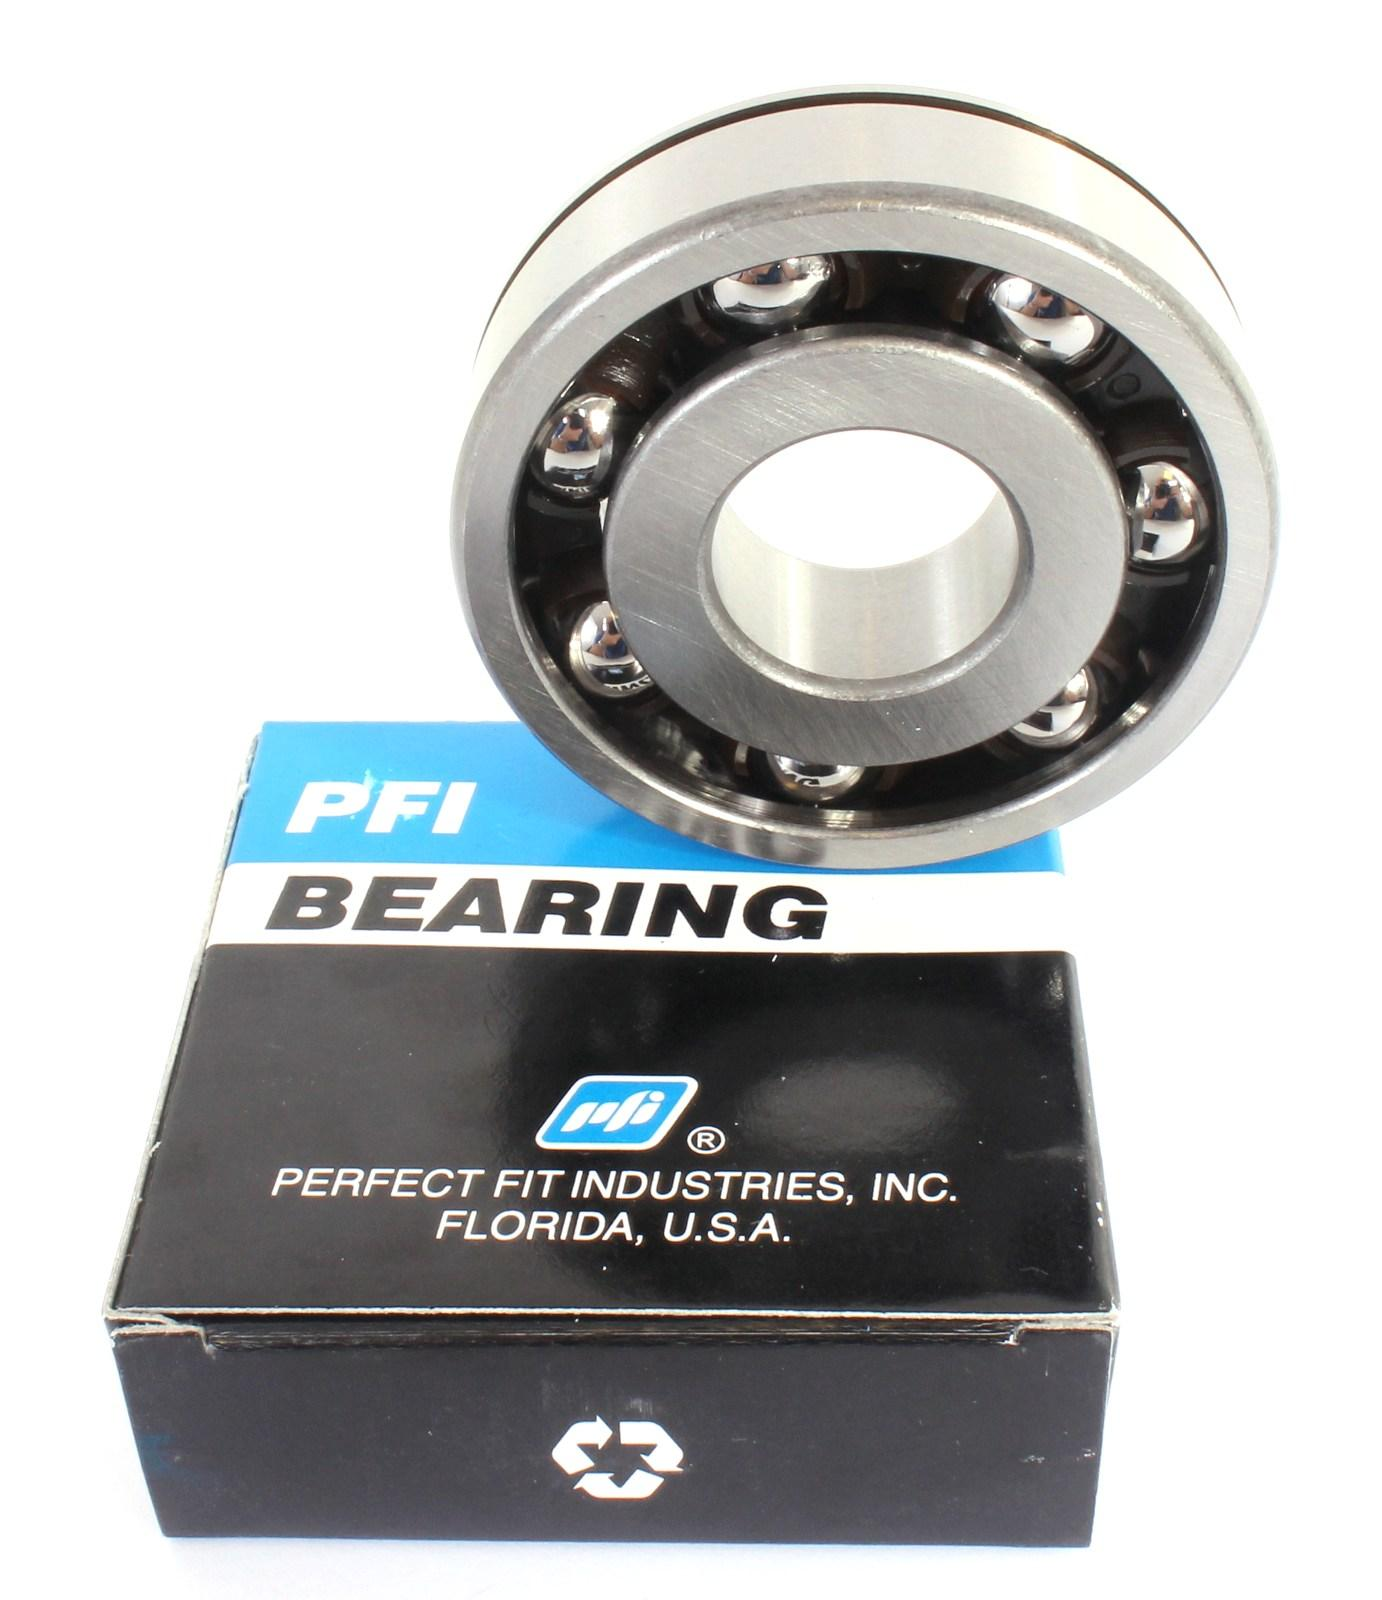 2004 Toyota Mr2 Transmission: B25-238D Gearbox Rear Input Shaft Bearing Compatible With